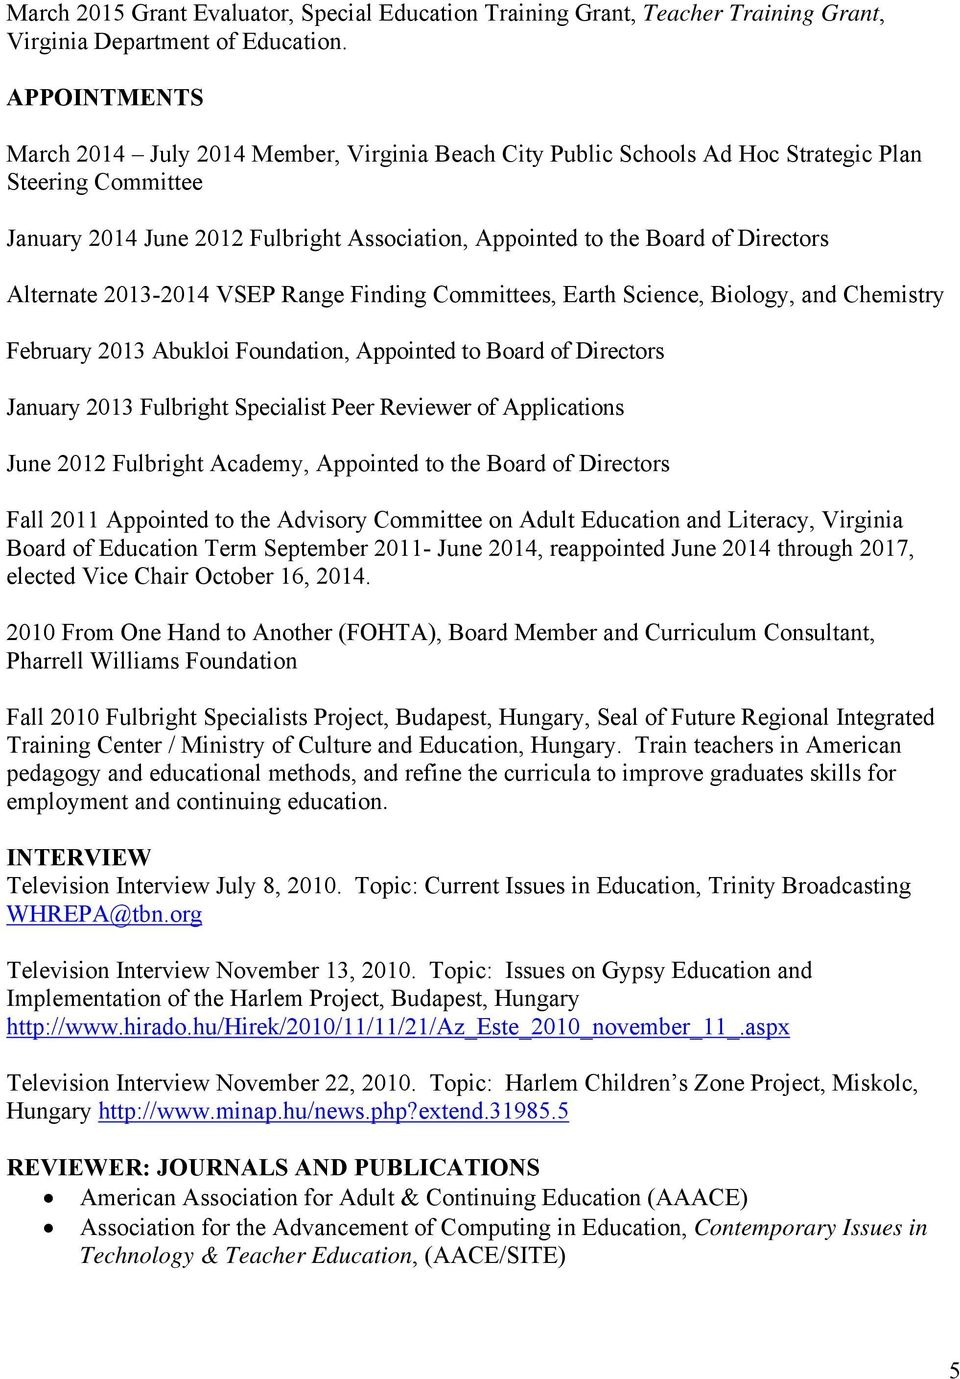 Alternate 2013-2014 VSEP Range Finding Committees, Earth Science, Biology, and Chemistry February 2013 Abukloi Foundation, Appointed to Board of Directors January 2013 Fulbright Specialist Peer